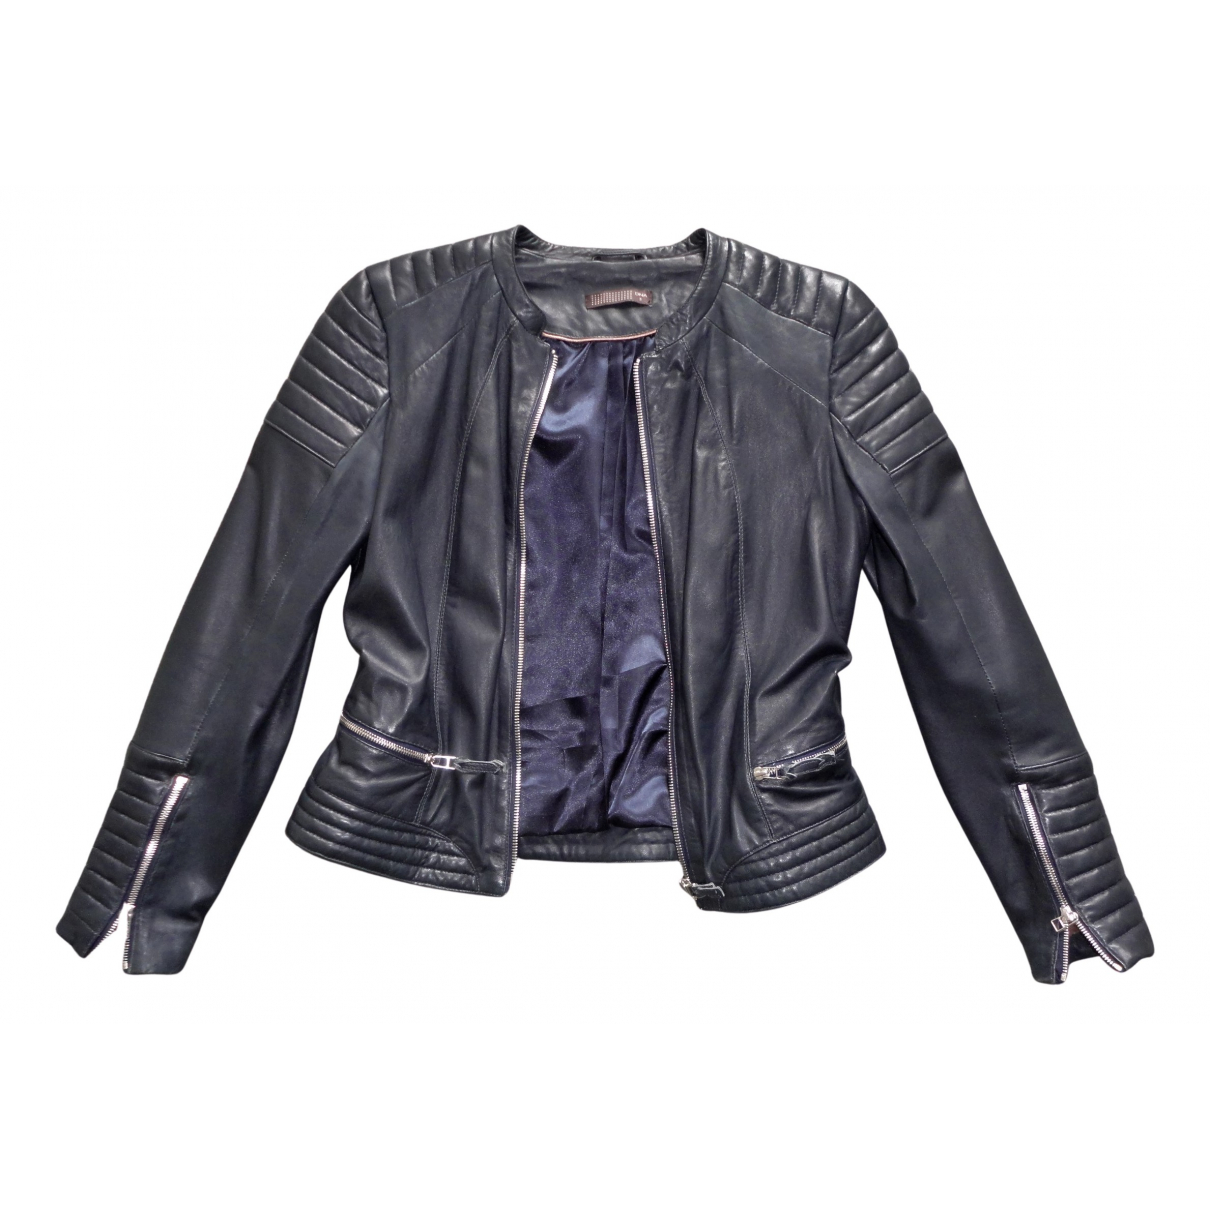 Dna N Navy Leather Leather jacket for Women 3 0-5